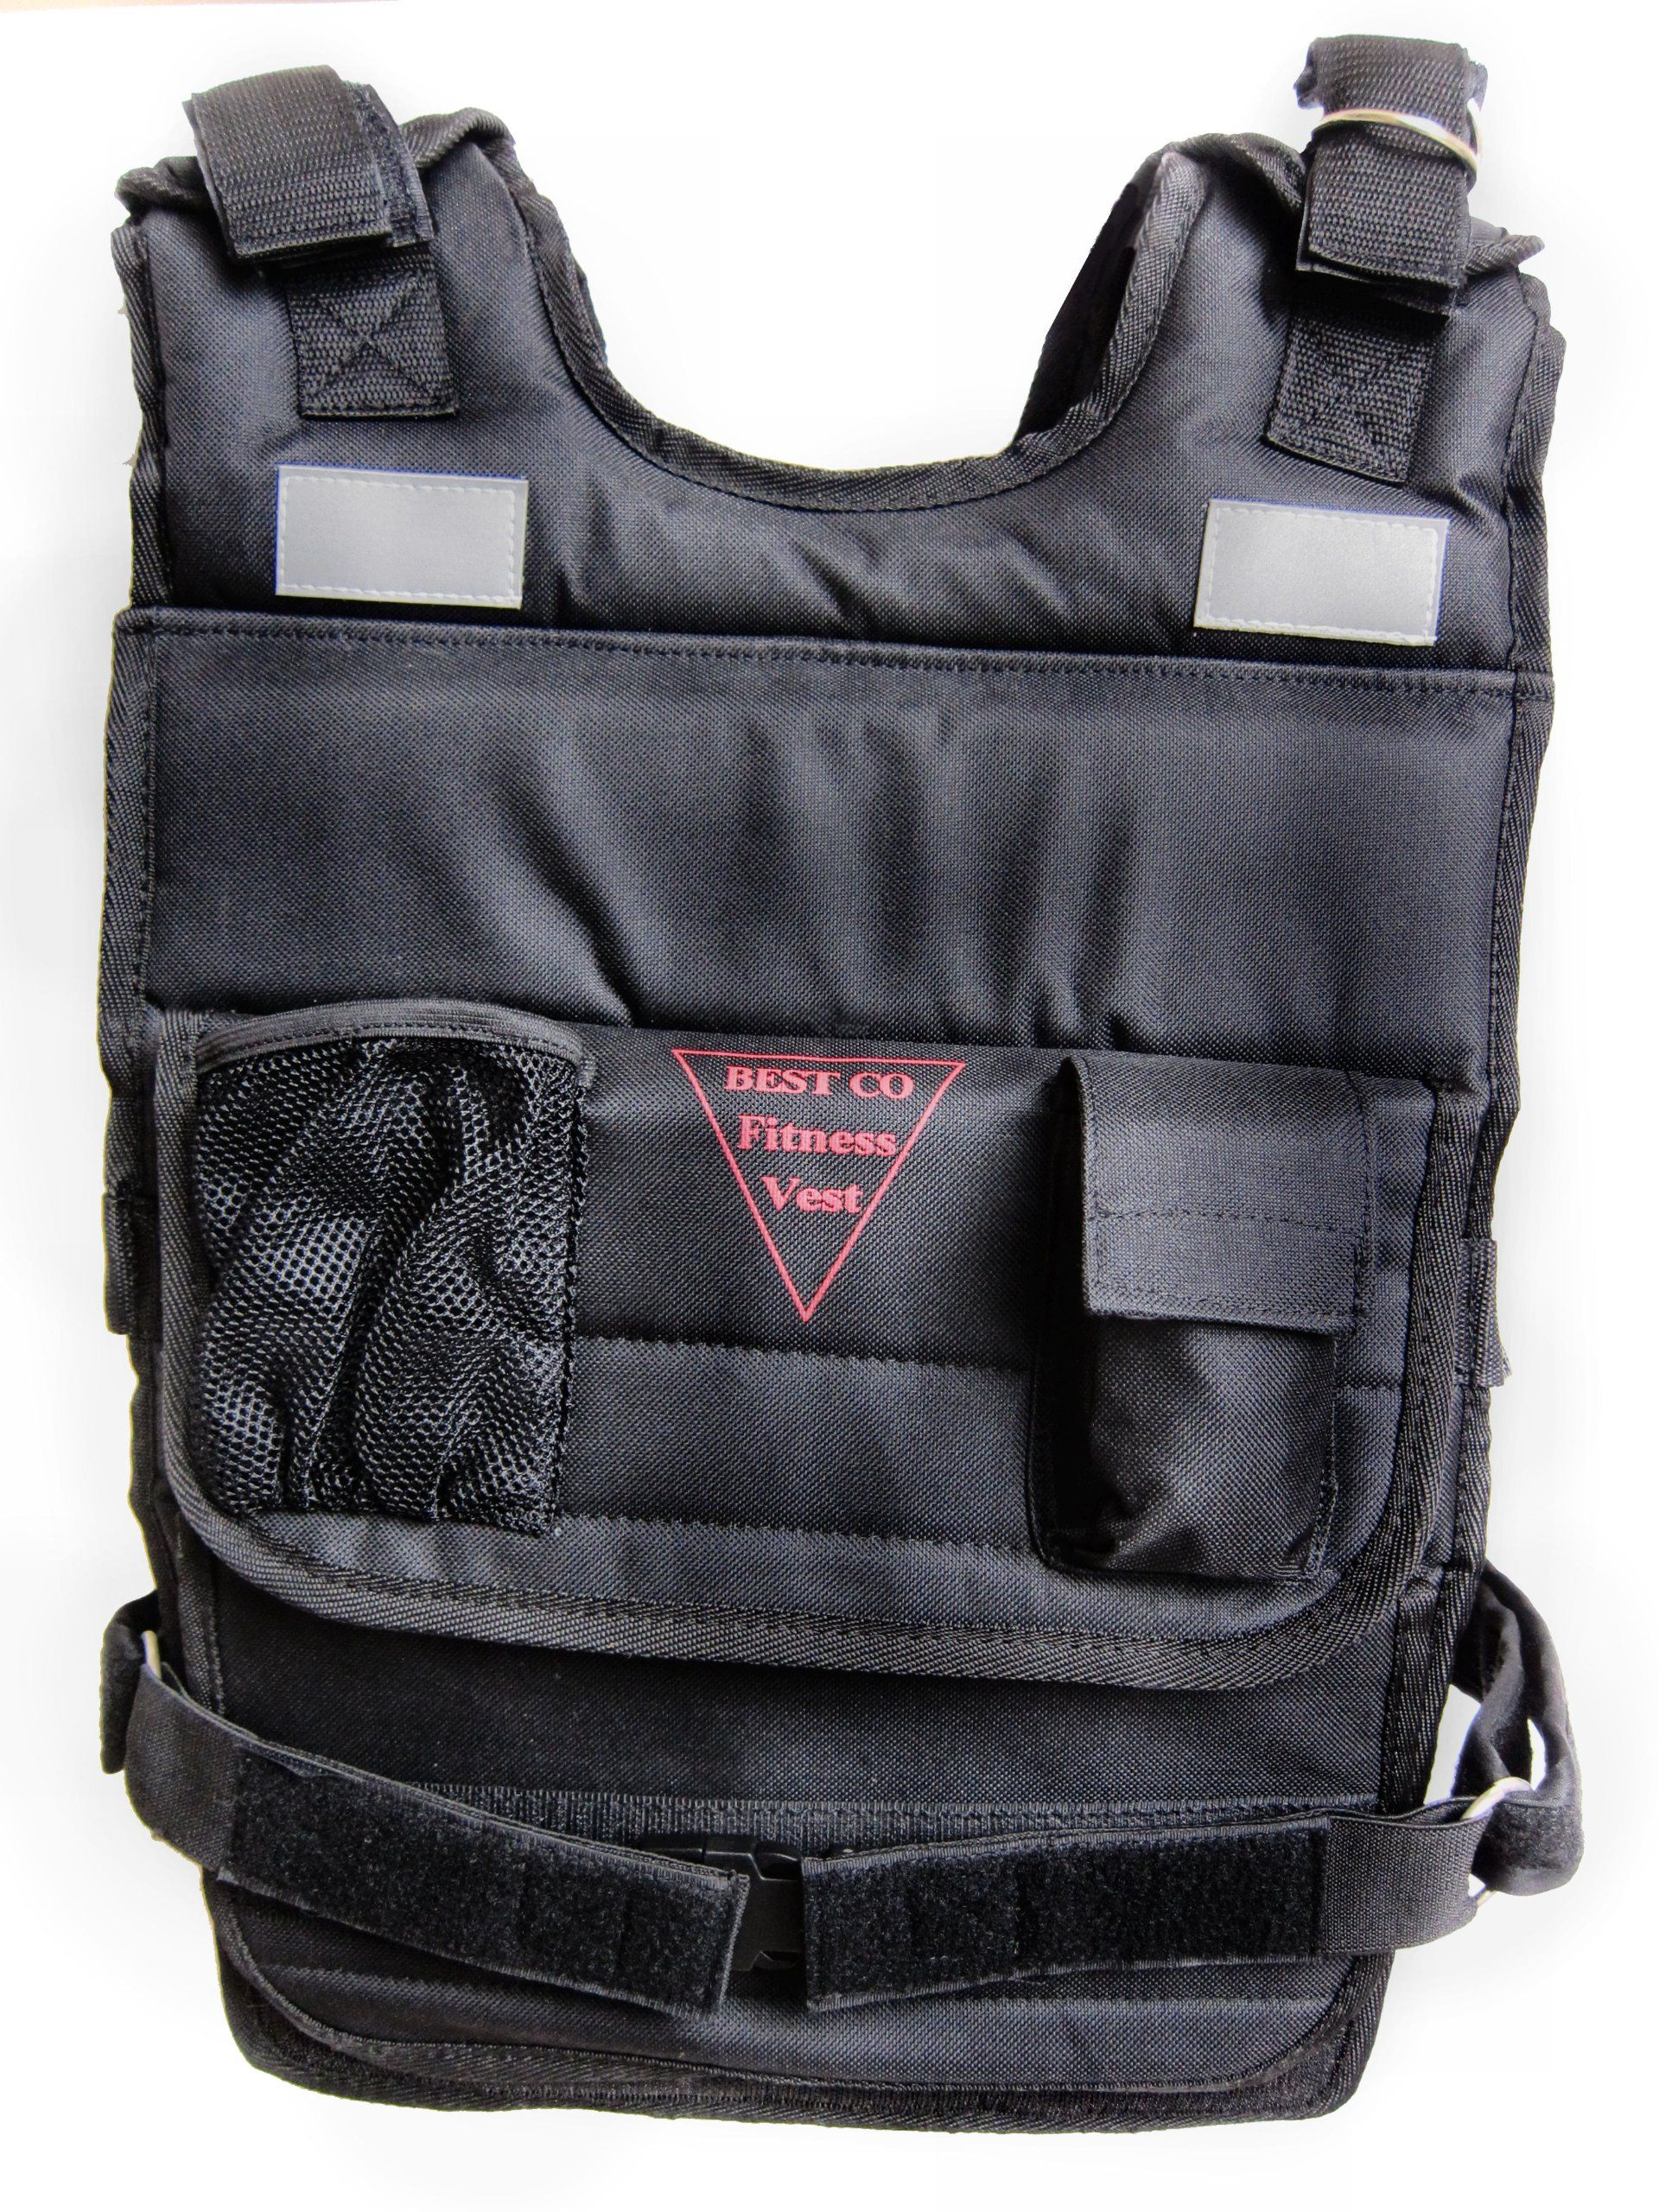 New Weighted Vest 100 Lbs. Fitness Vest (With images